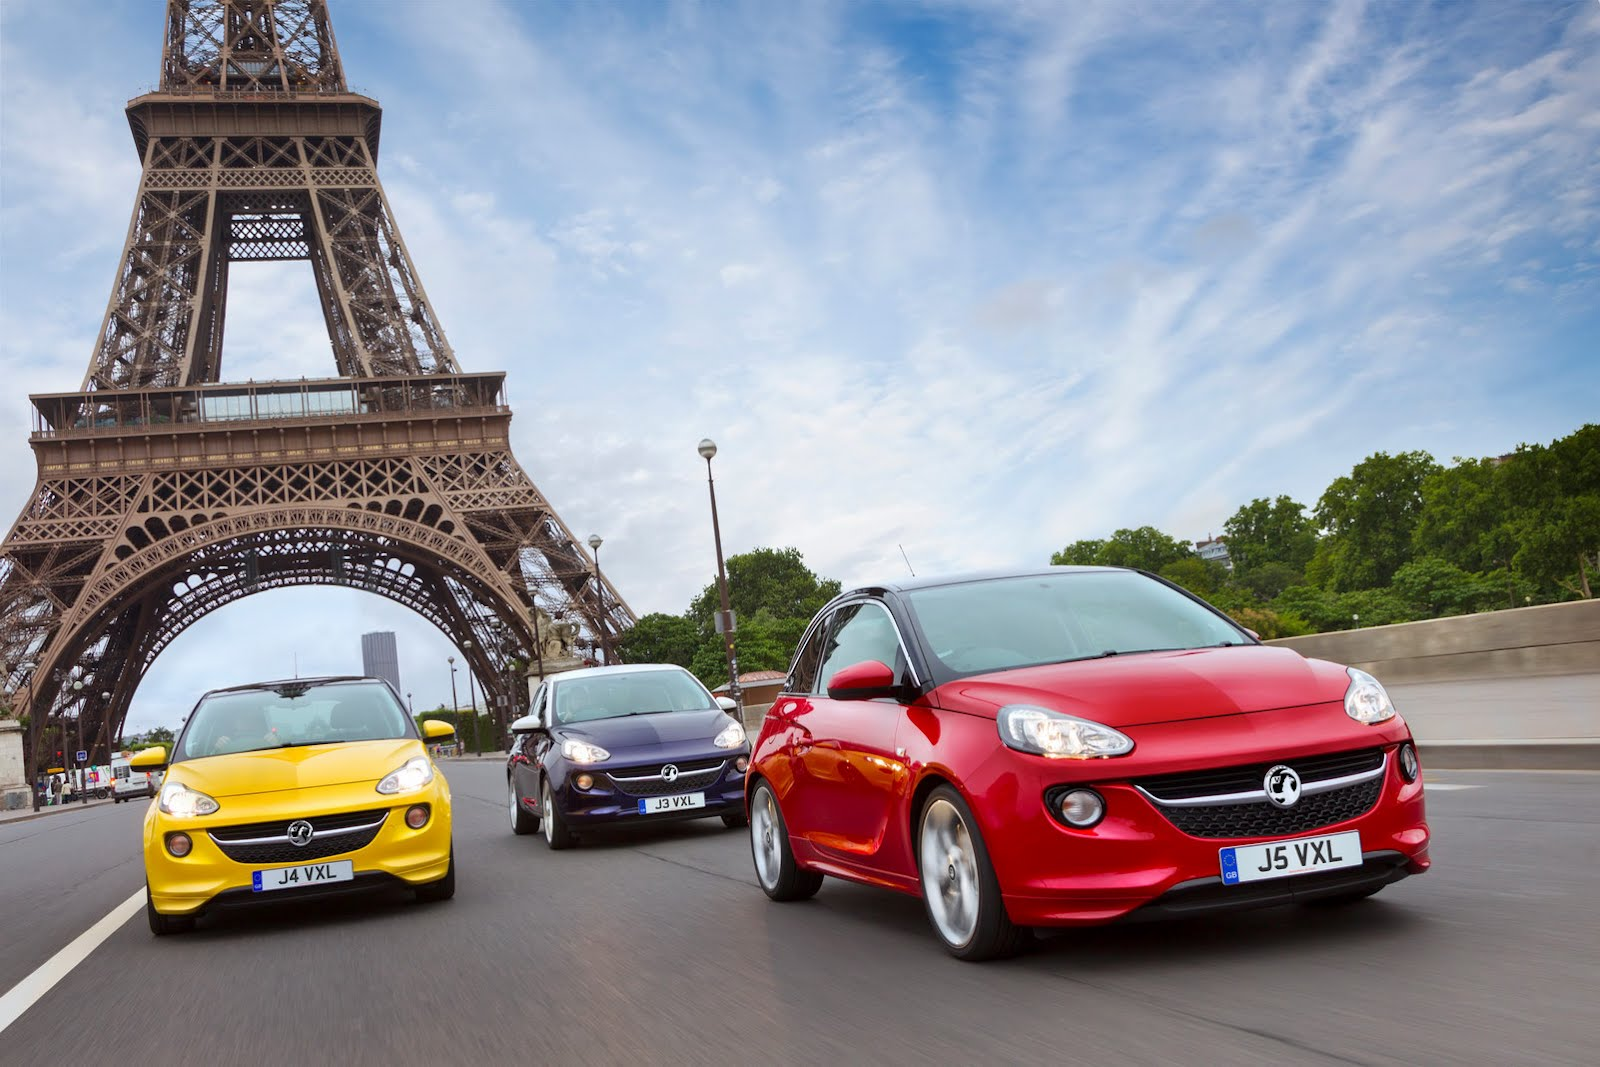 Opel Adam Photos Inverted to Please Vauxhall Fans - autoevolution